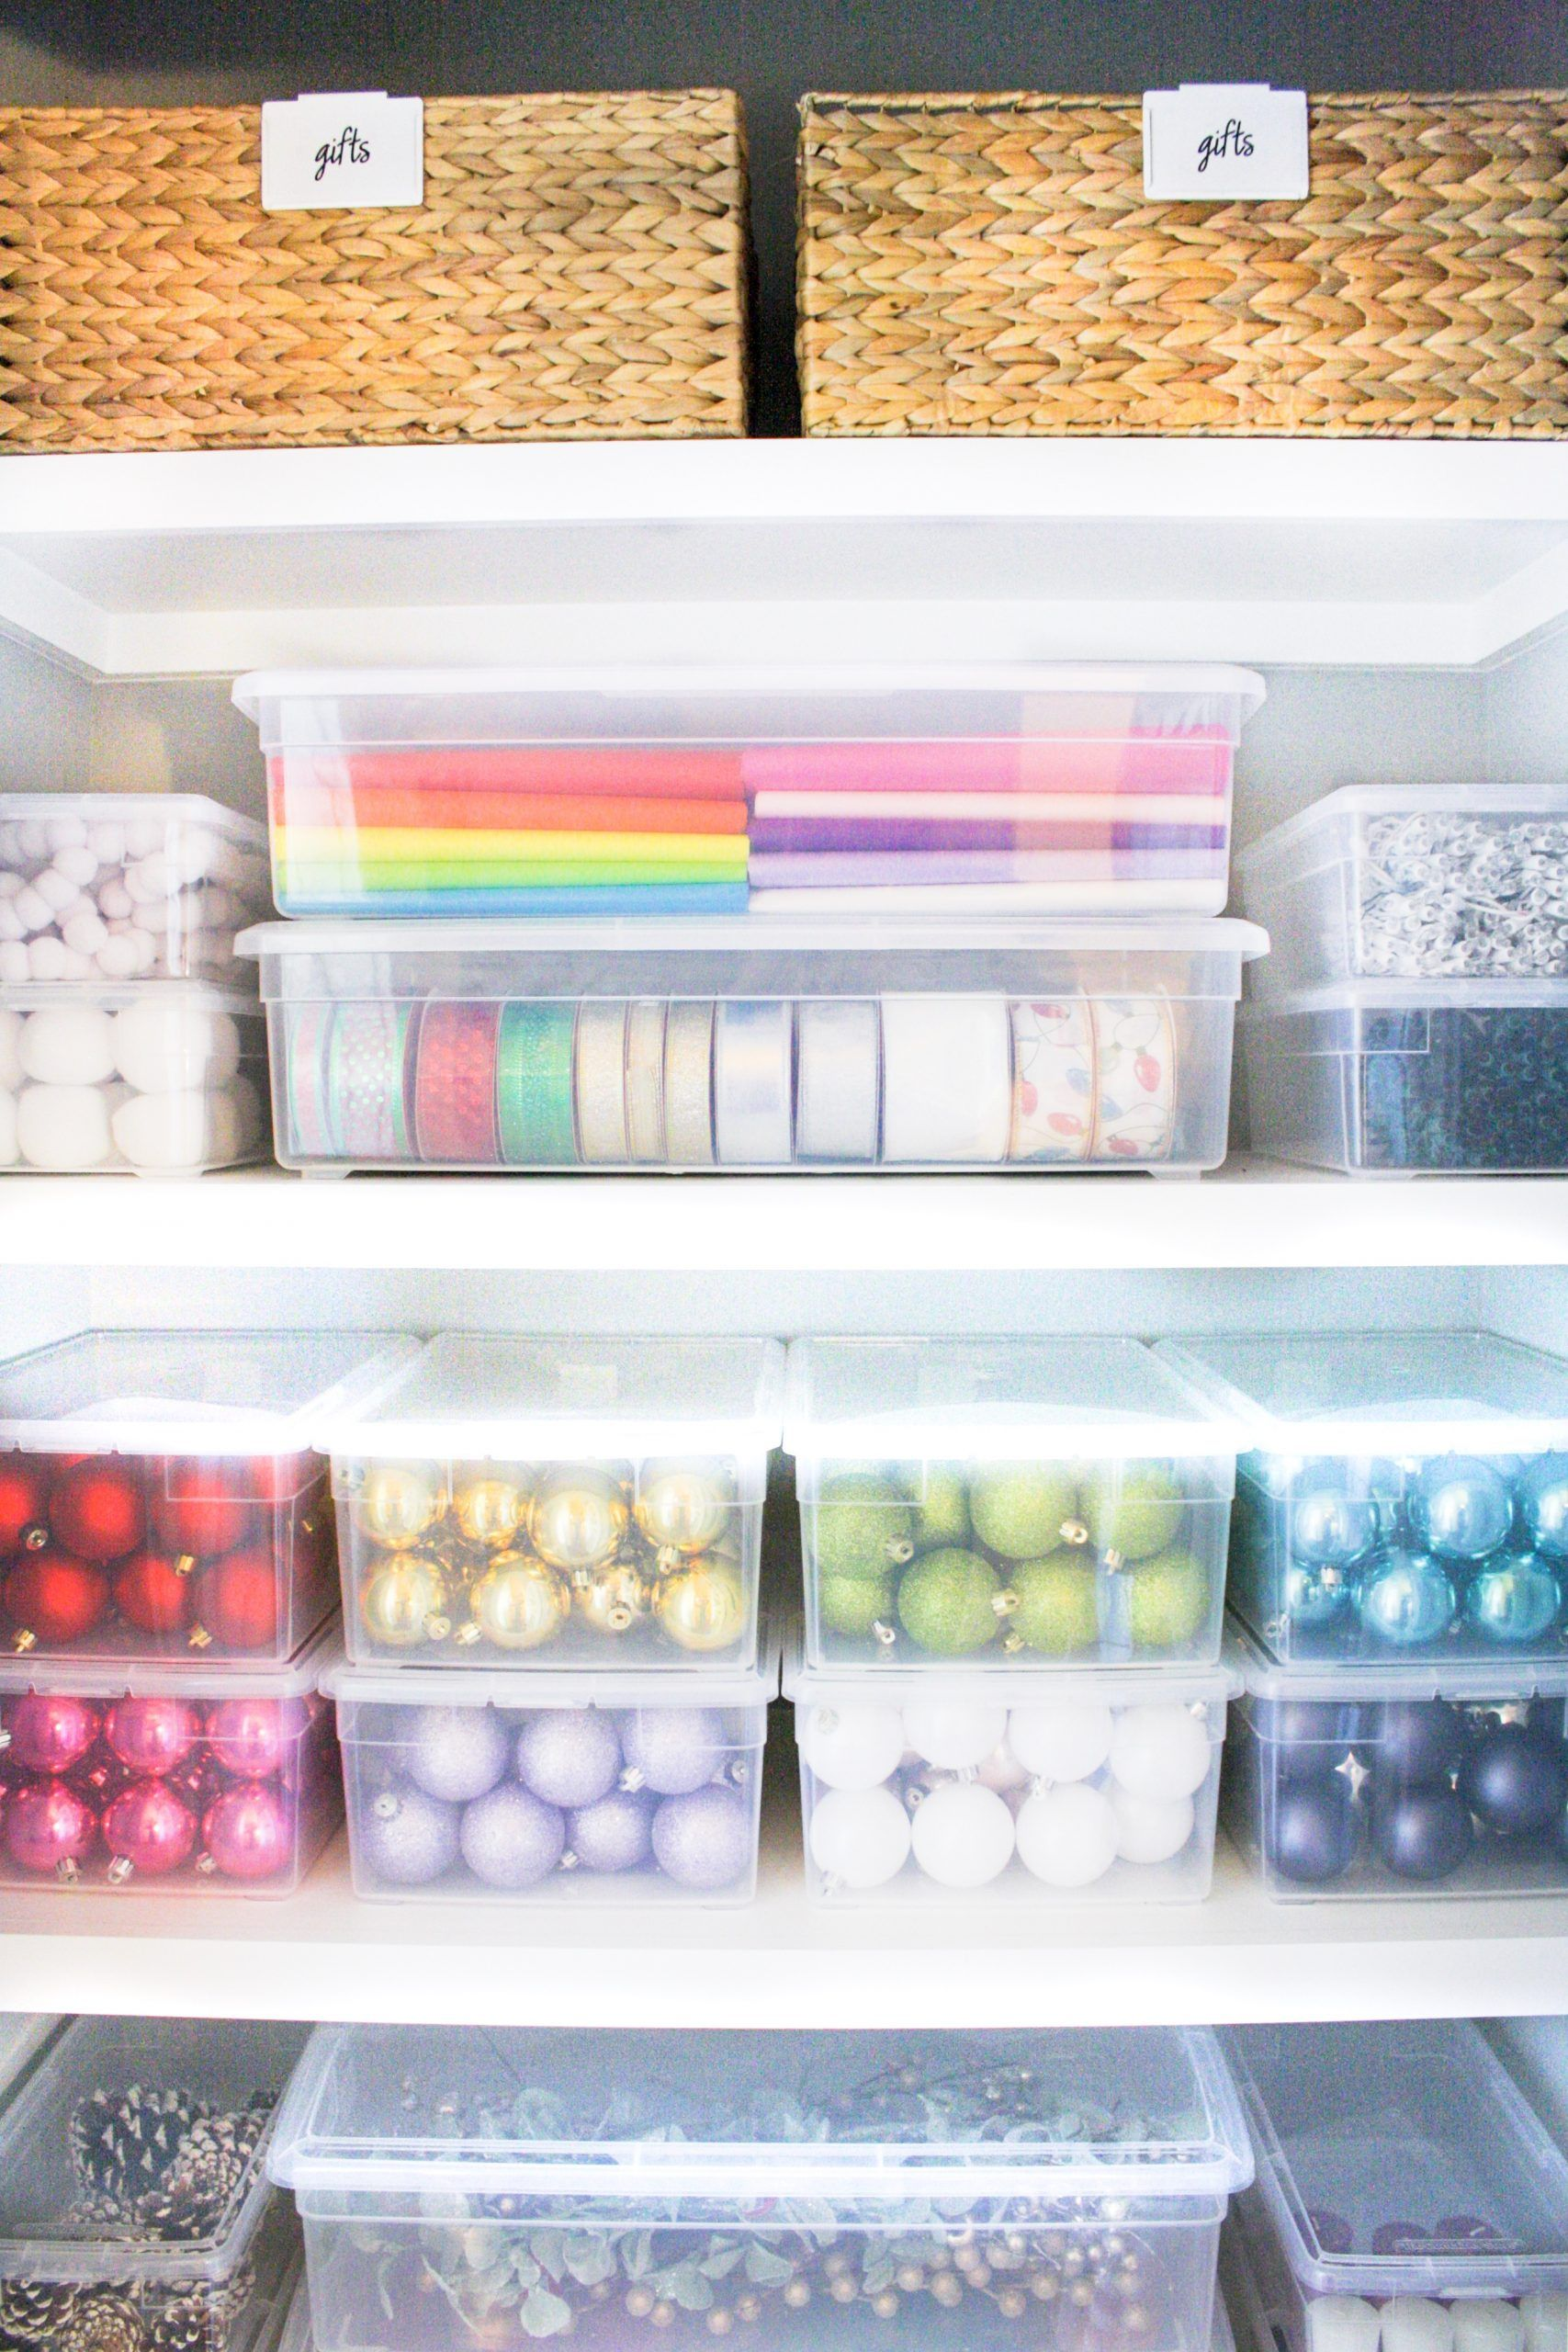 How to Organize a Gifting Closet - The Home Edit -   19 the home edit organization closet ideas